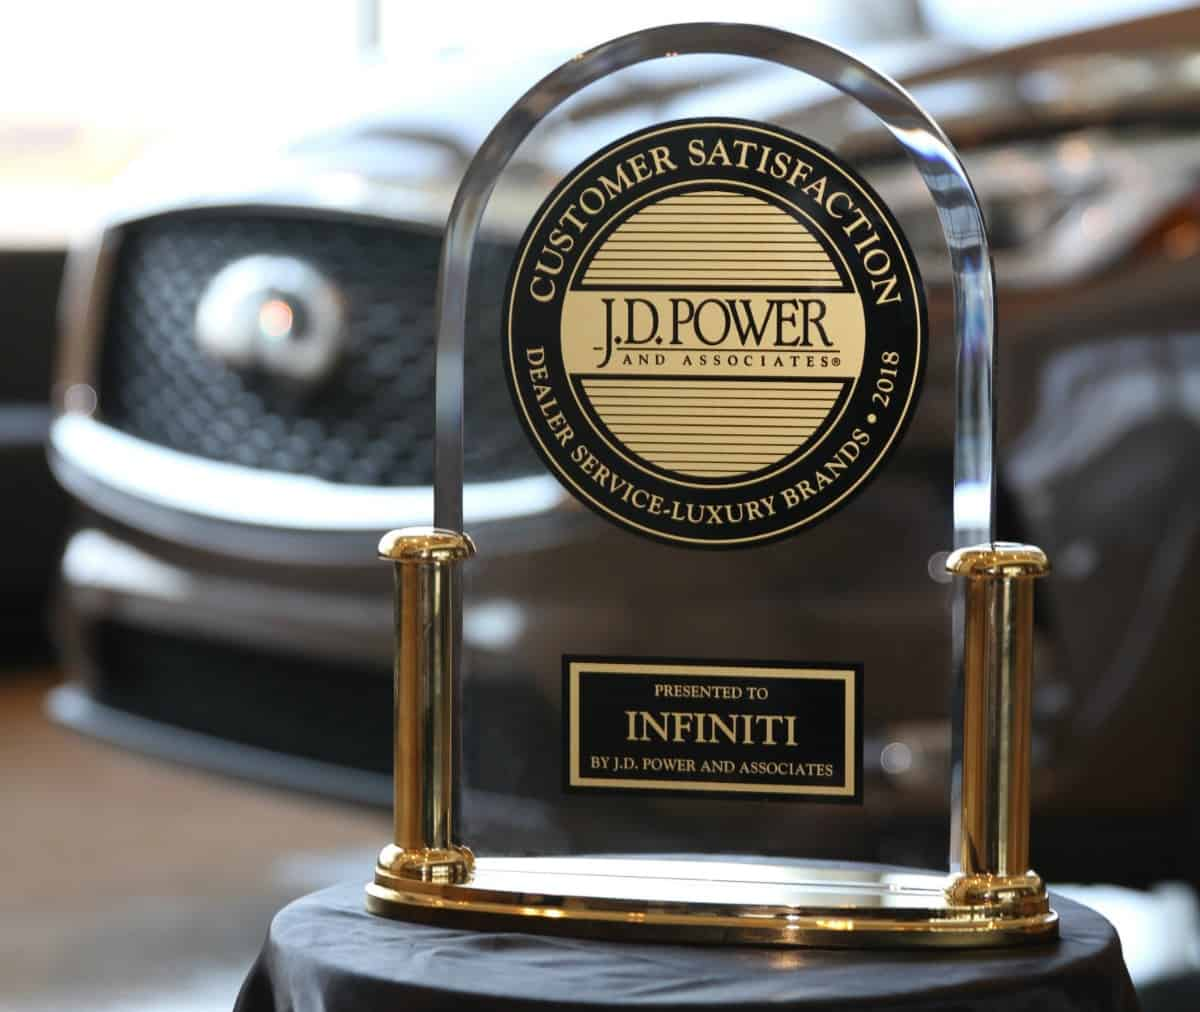 Infiniti J D Power customer satisfaction award